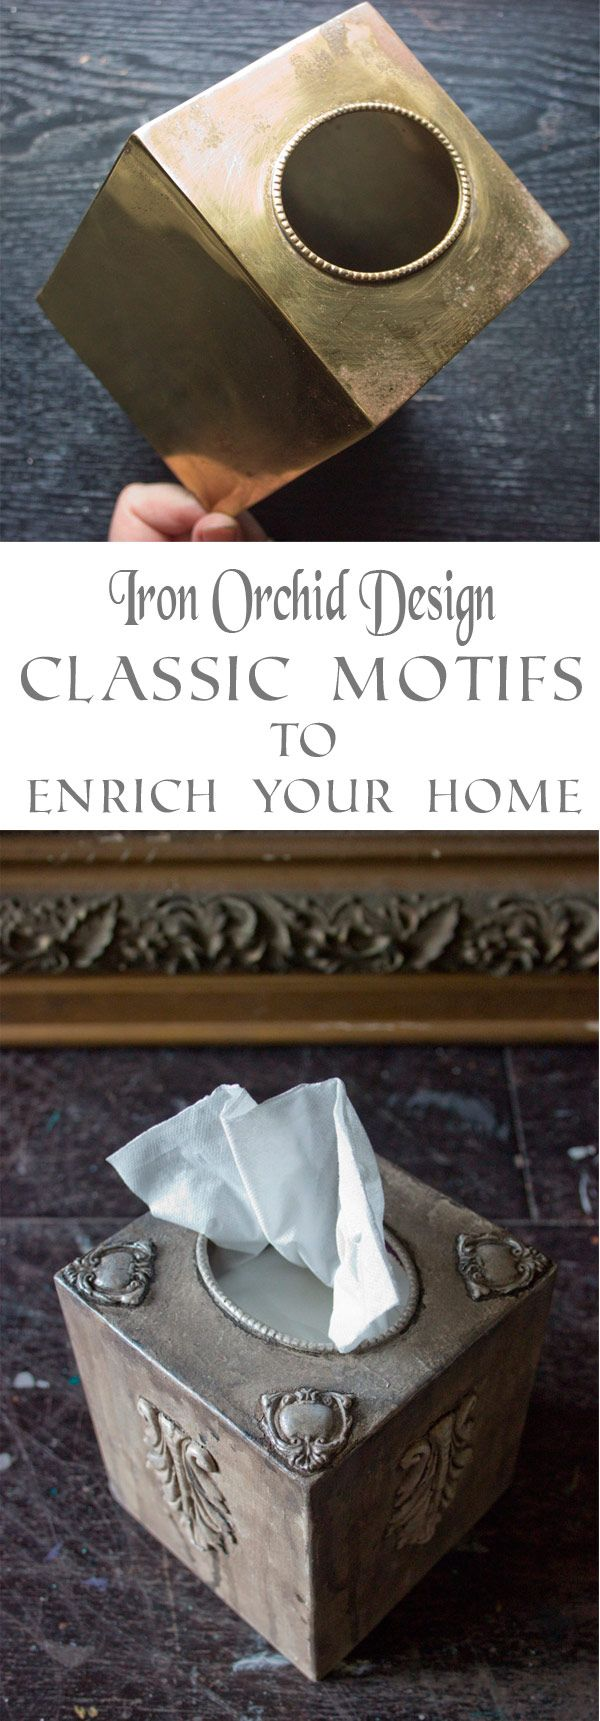 Heather is simply amazing>>> Use Iron Orchid Design Moulds and simple paint finishing techniques to take your dated accessories to the next level. Step-by-step guide.